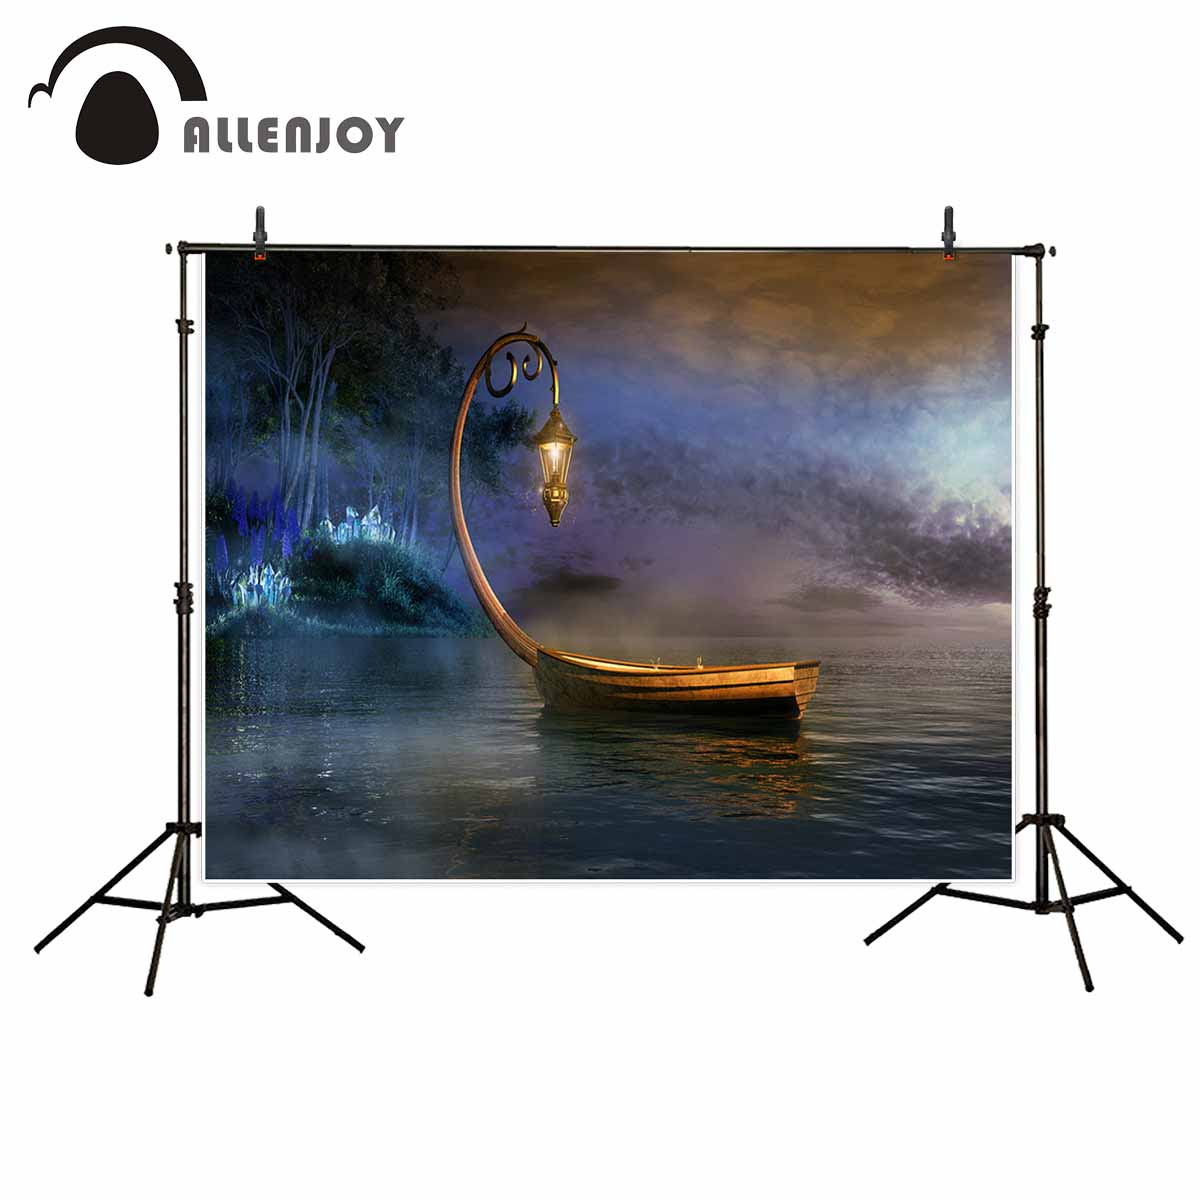 Allenjoy Fairy tale boat lantern river cartoon photocall decorations photographic background fund decorations vinyl photography background fairy tale